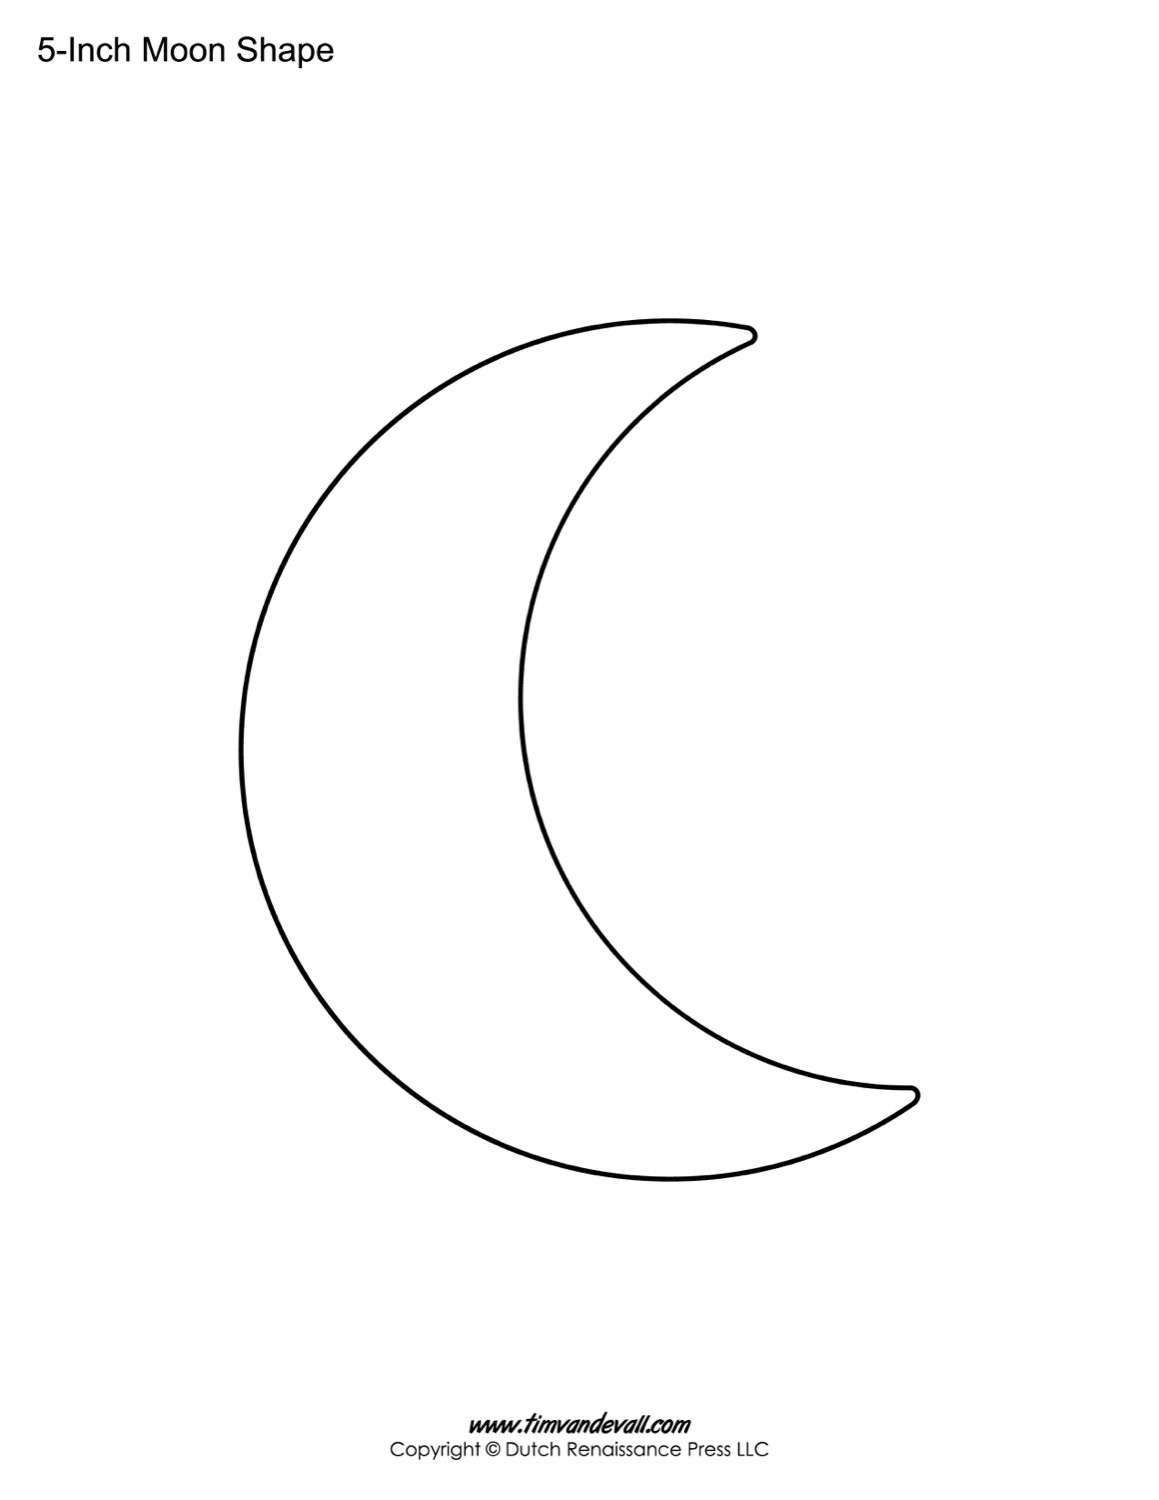 Blank Moon Templates | Printable Moon Shapes To Blank Worksheet Templates